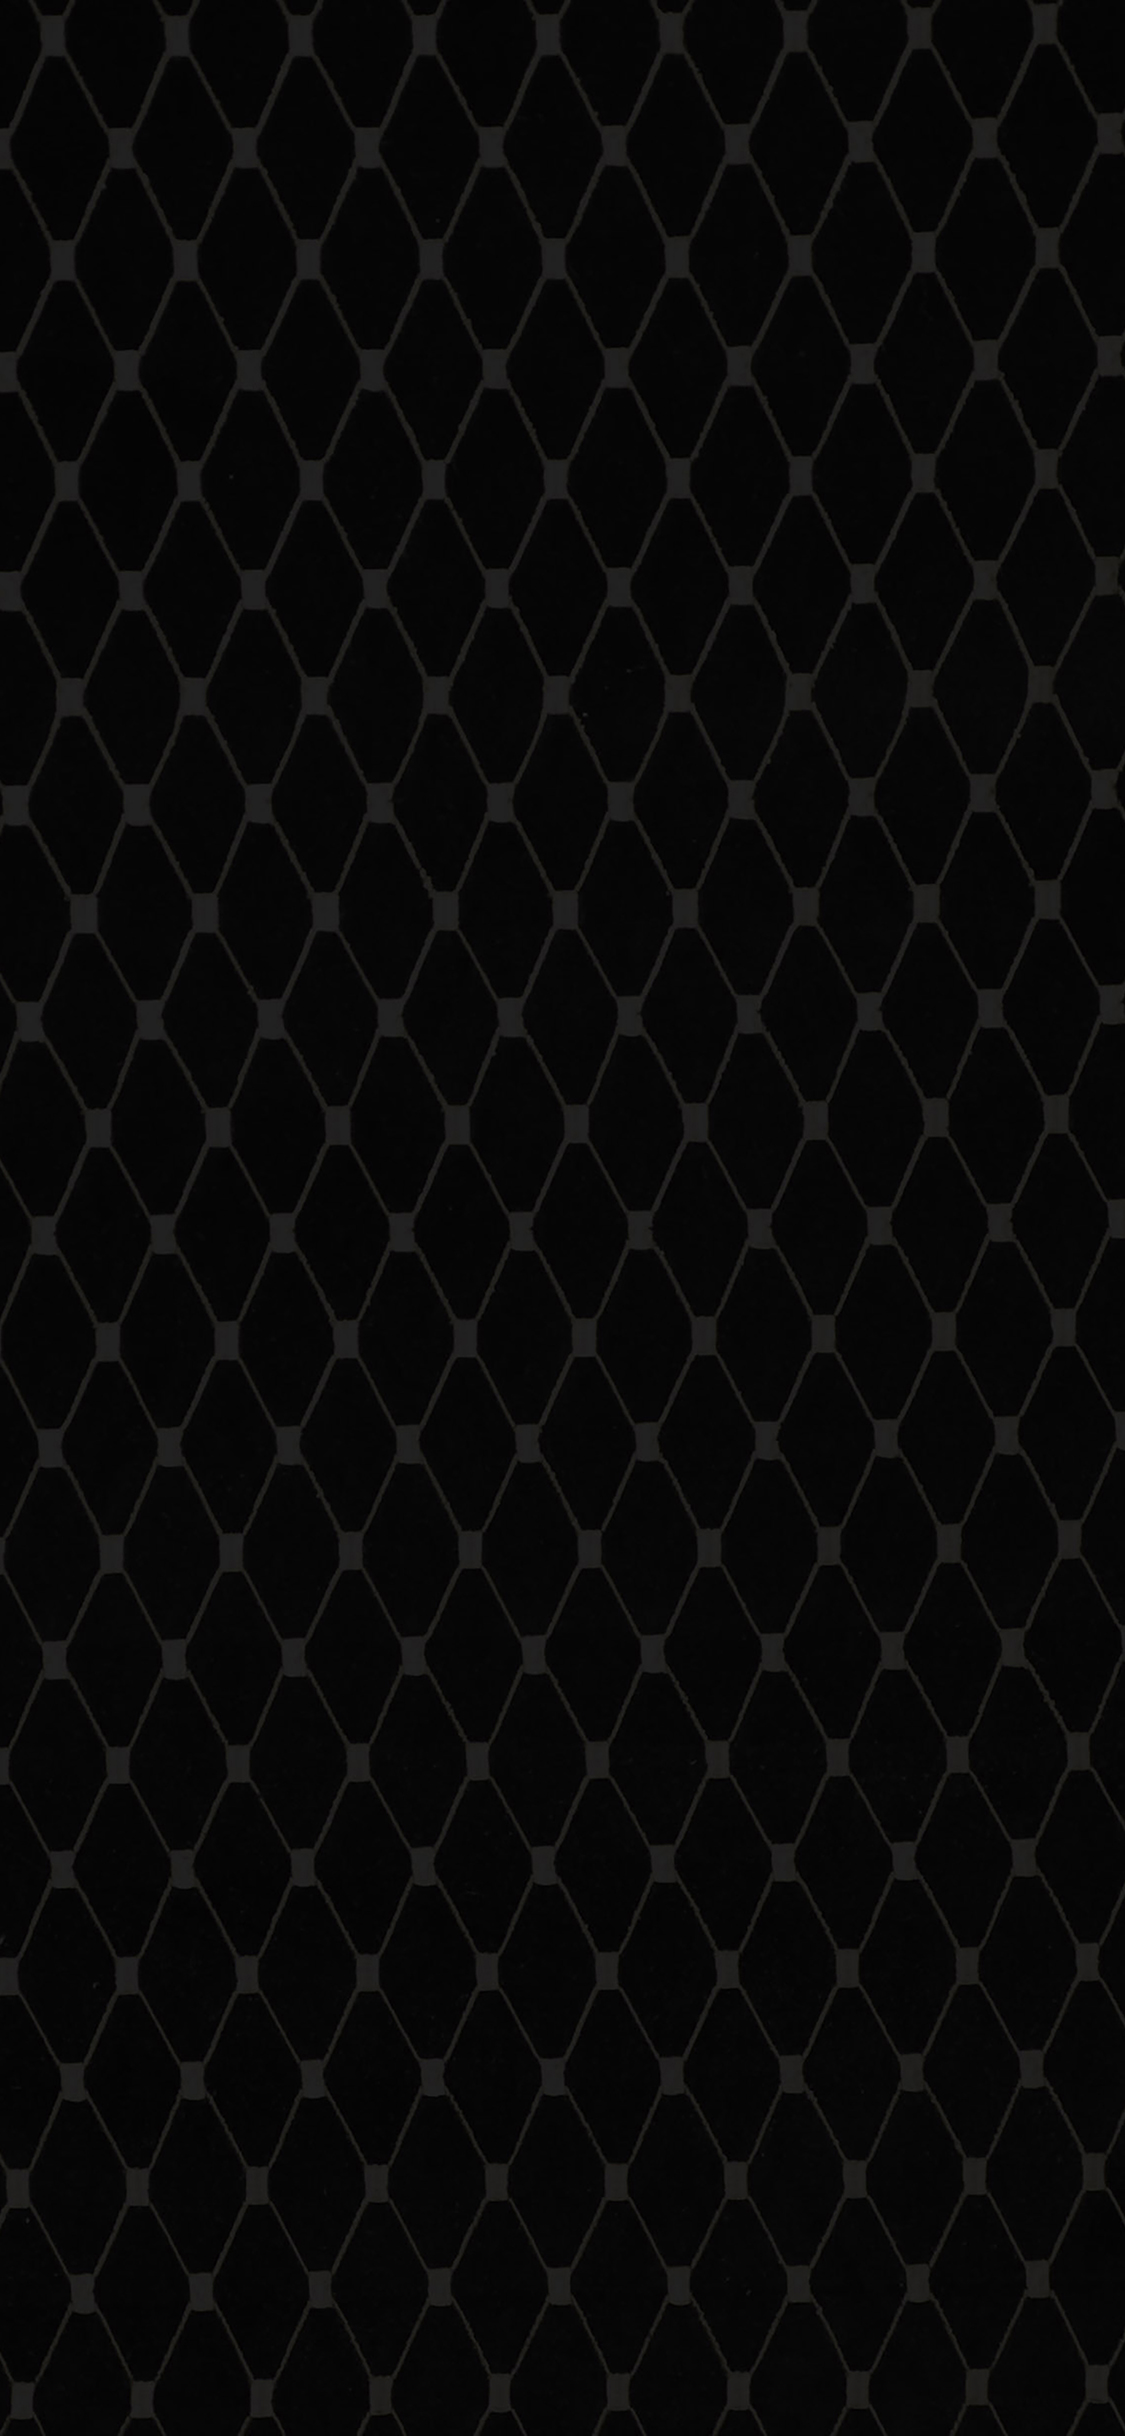 vb23-wallpaper-bang-goo-dark-pattern